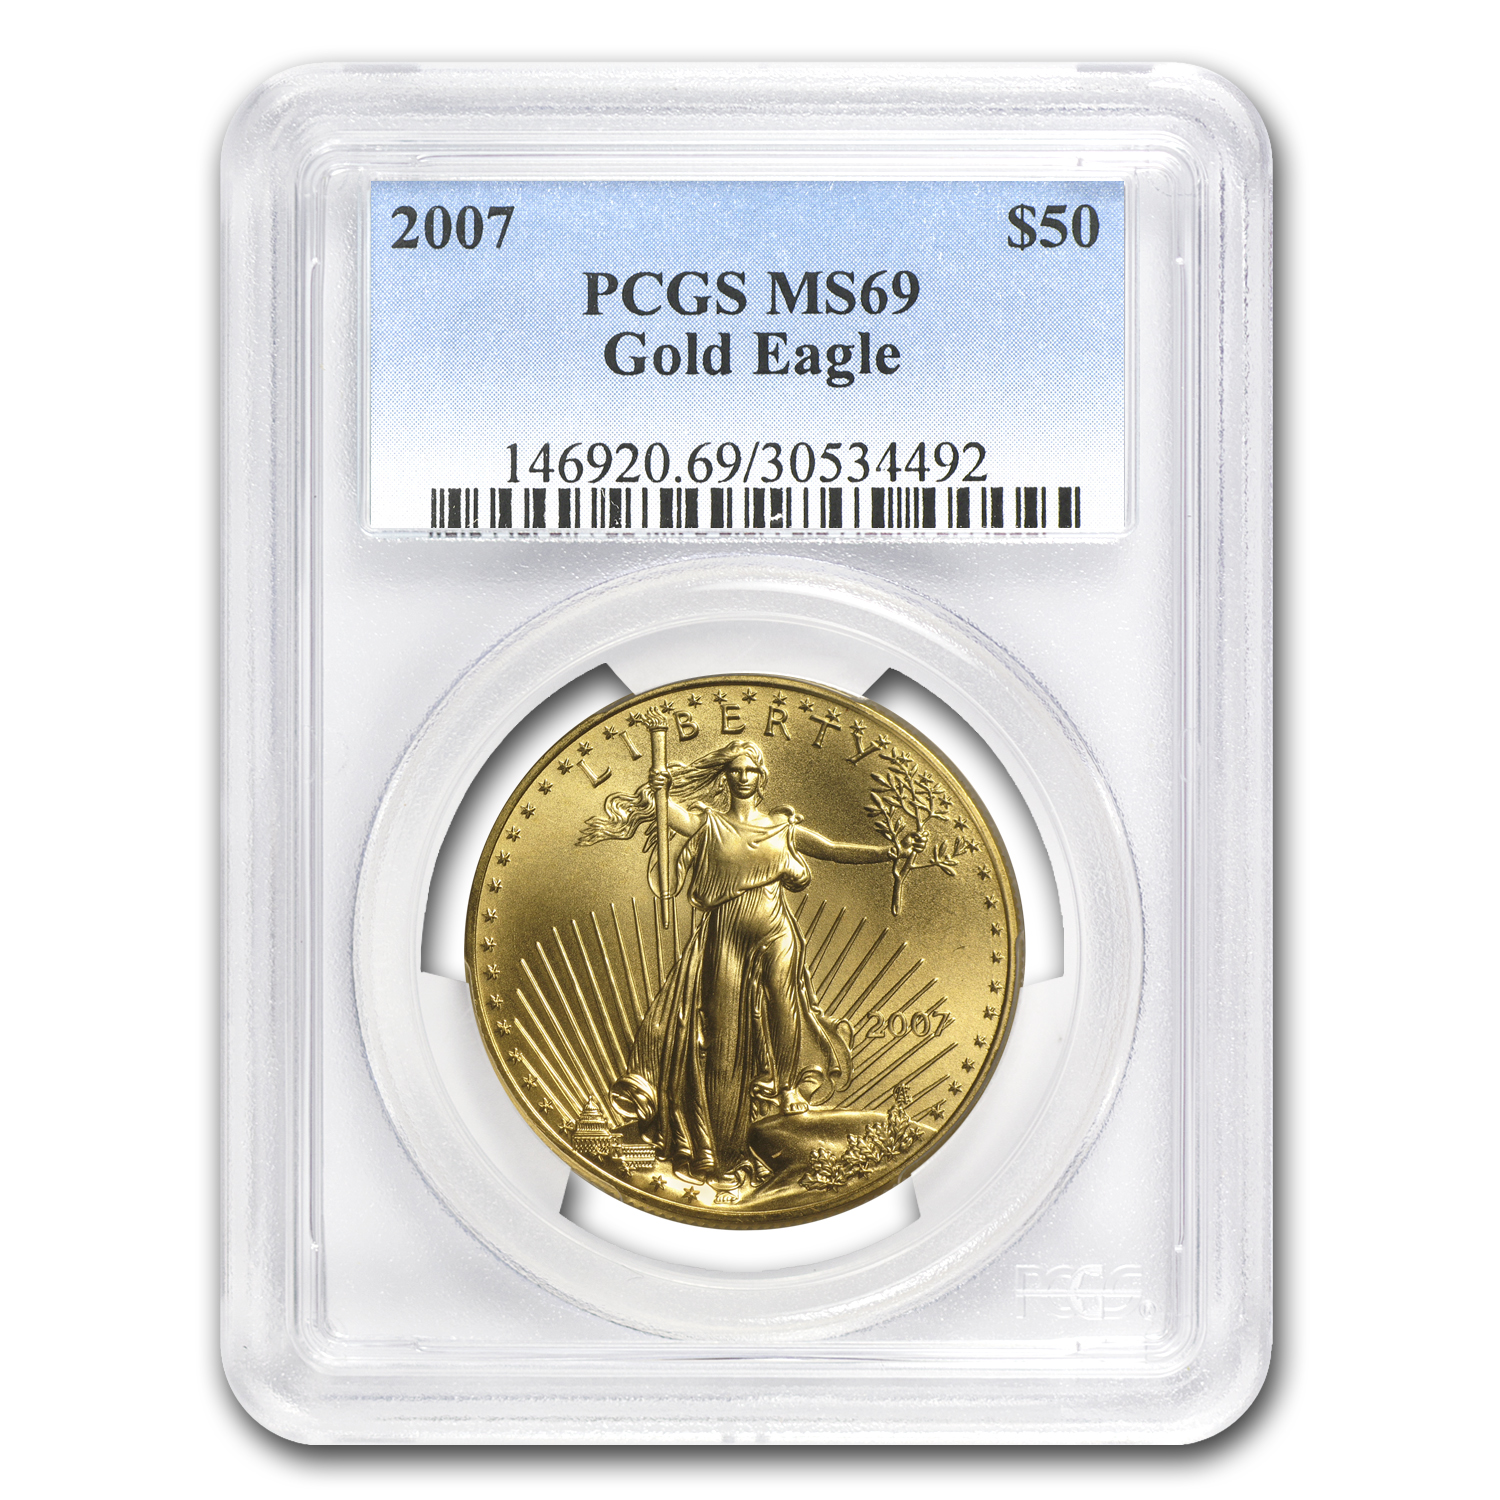 2007 1 oz Gold American Eagle MS-69 PCGS